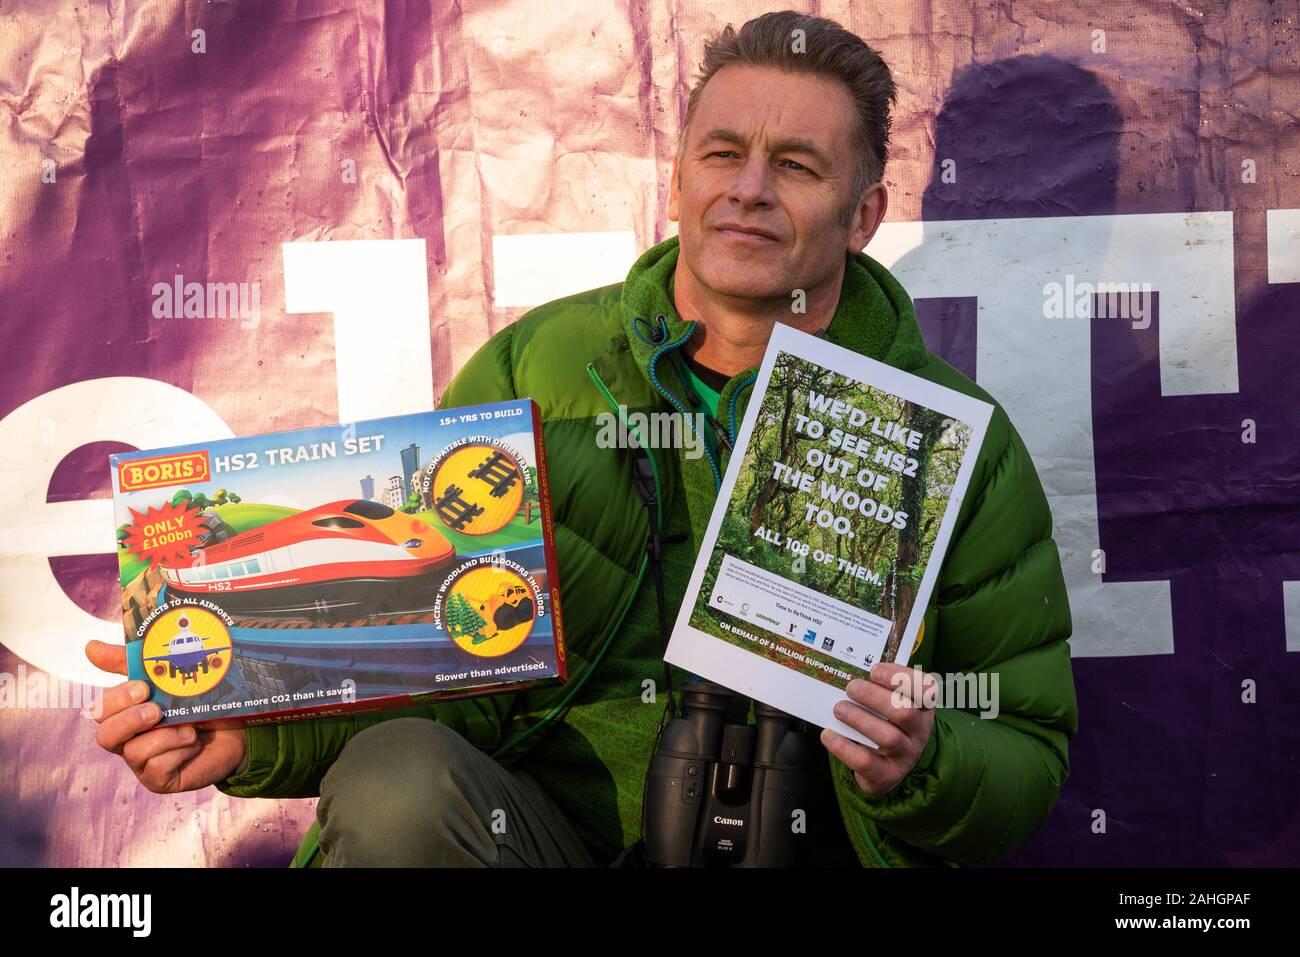 denham-uk-29th-december-2019-stand-for-the-trees-a-walk-for-wildlife-and-water-organised-by-chris-packham-and-supported-by-extinction-rebellion-rethinkhs2-save-the-colne-valley-stop-hs2-and-hillingdon-green-party-speakers-described-the-threats-to-the-habitats-that-are-the-homes-of-endangered-eels-bats-otters-water-voles-the-loss-of-28000-trees-to-hs2-and-the-chalk-aquifer-that-contributes-to-much-of-londons-water-pictured-chris-packham-credit-stephen-bellalamy-2AHGPAF.jpg